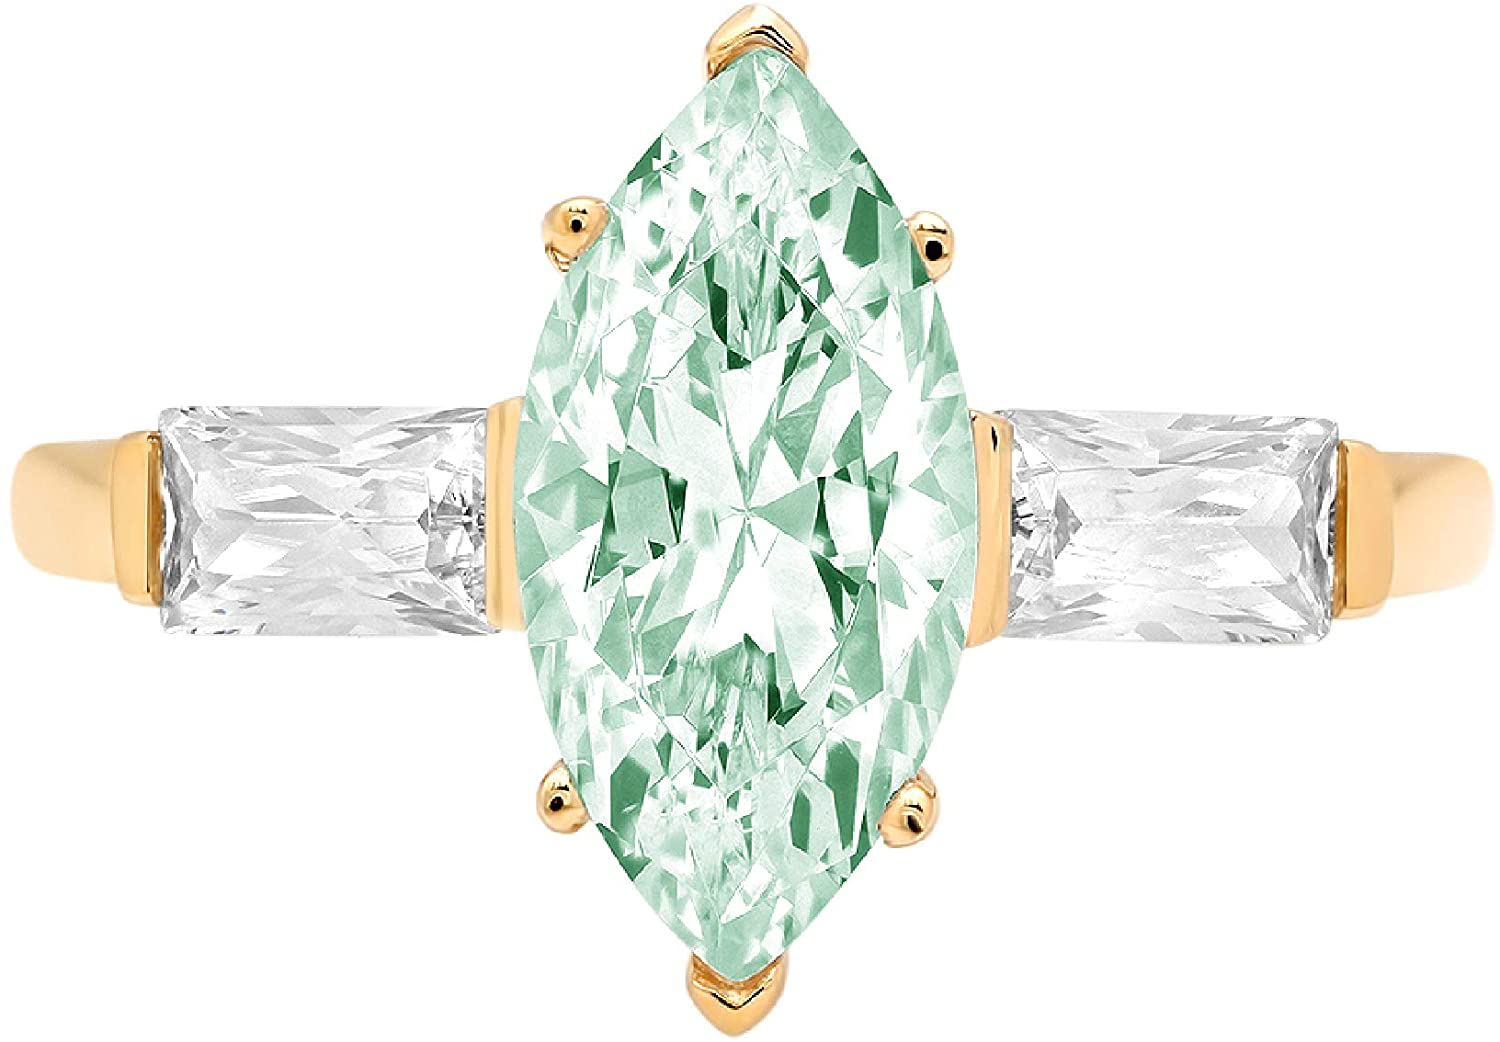 2 ct Marquise Baguette cut 3 stone Solitaire with Accent Davidsonite Mint Green Simulated Diamond Ideal VVS1 Engagement Promise Statement Anniversary Bridal Wedding Ring 14k Yellow Gold